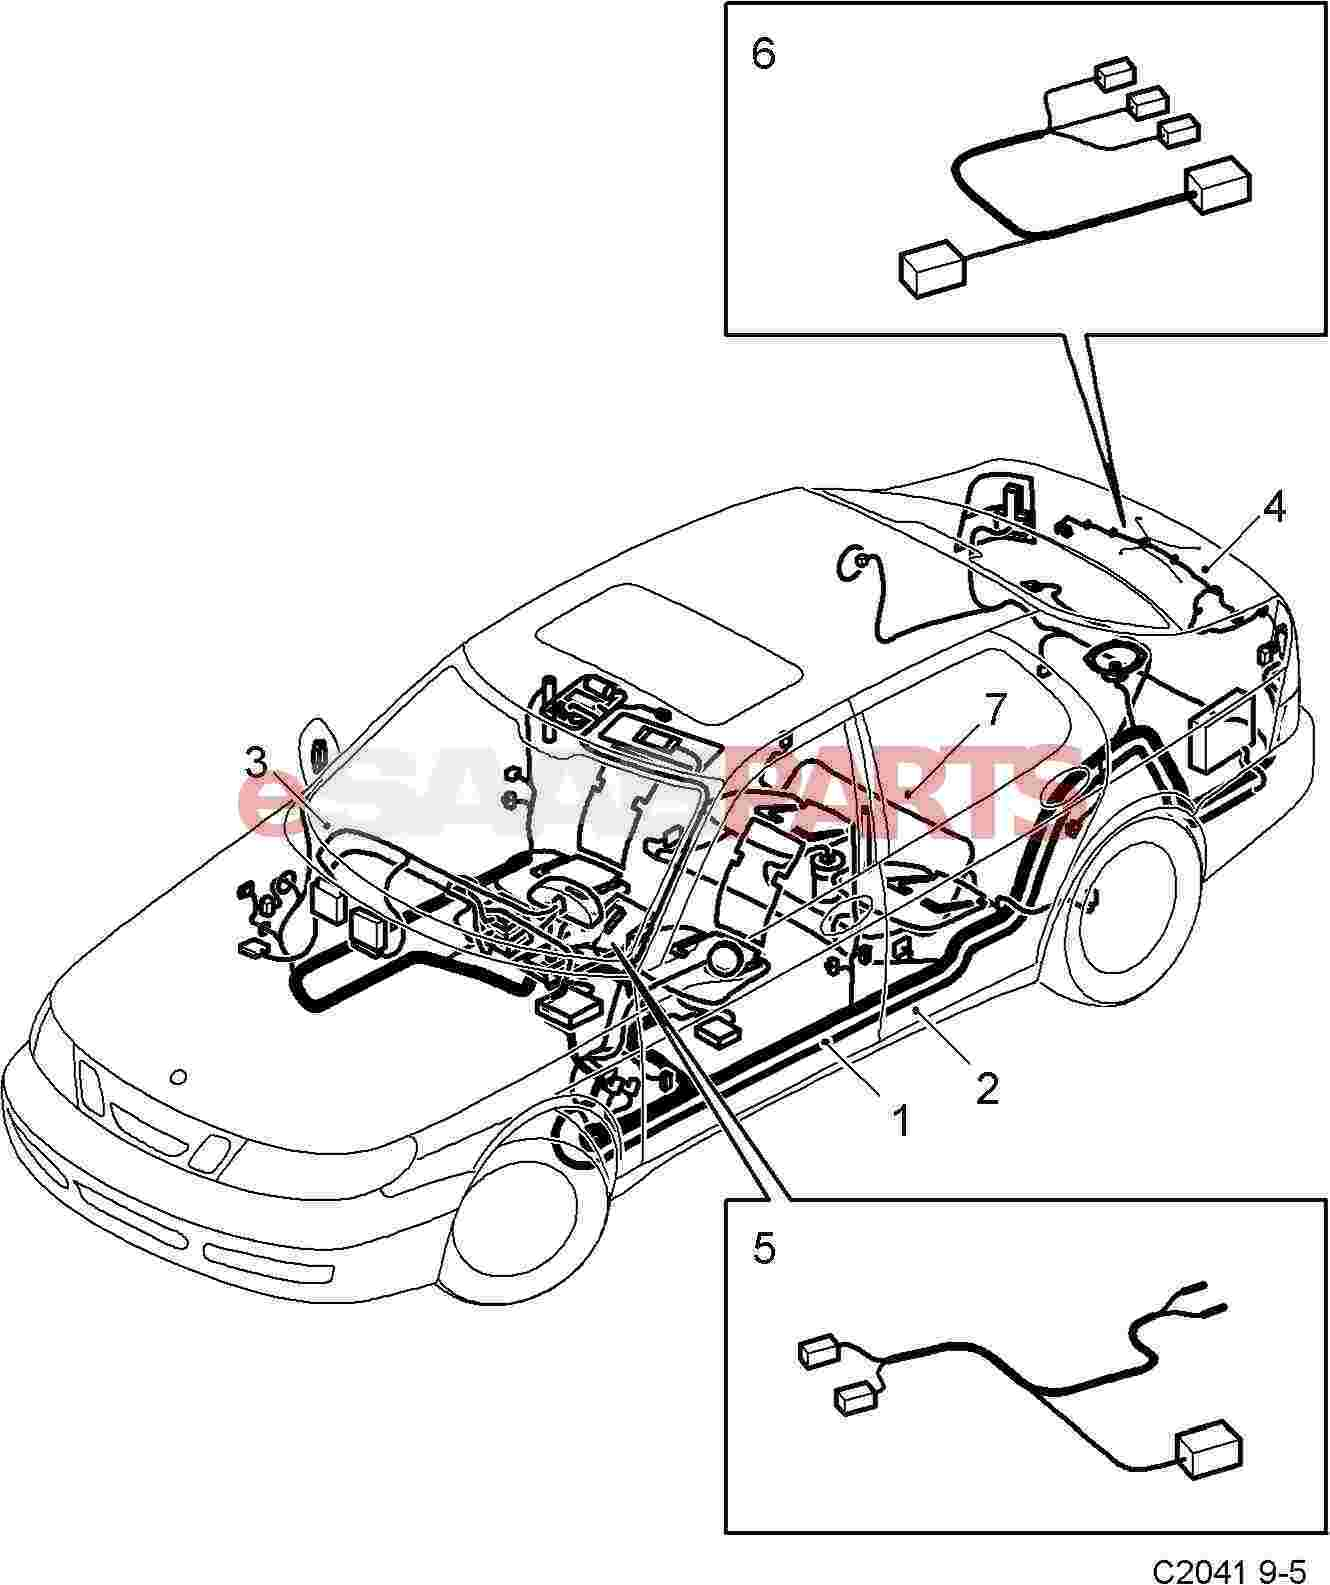 Wiring Diagram Saab 95 Parking Assistance Diagram Base Website Parking  Assistance - POSTERIORHEARTDIAGRAM.BELLUNOURBANMARATHON.ITDiagram Base Website Full Edition